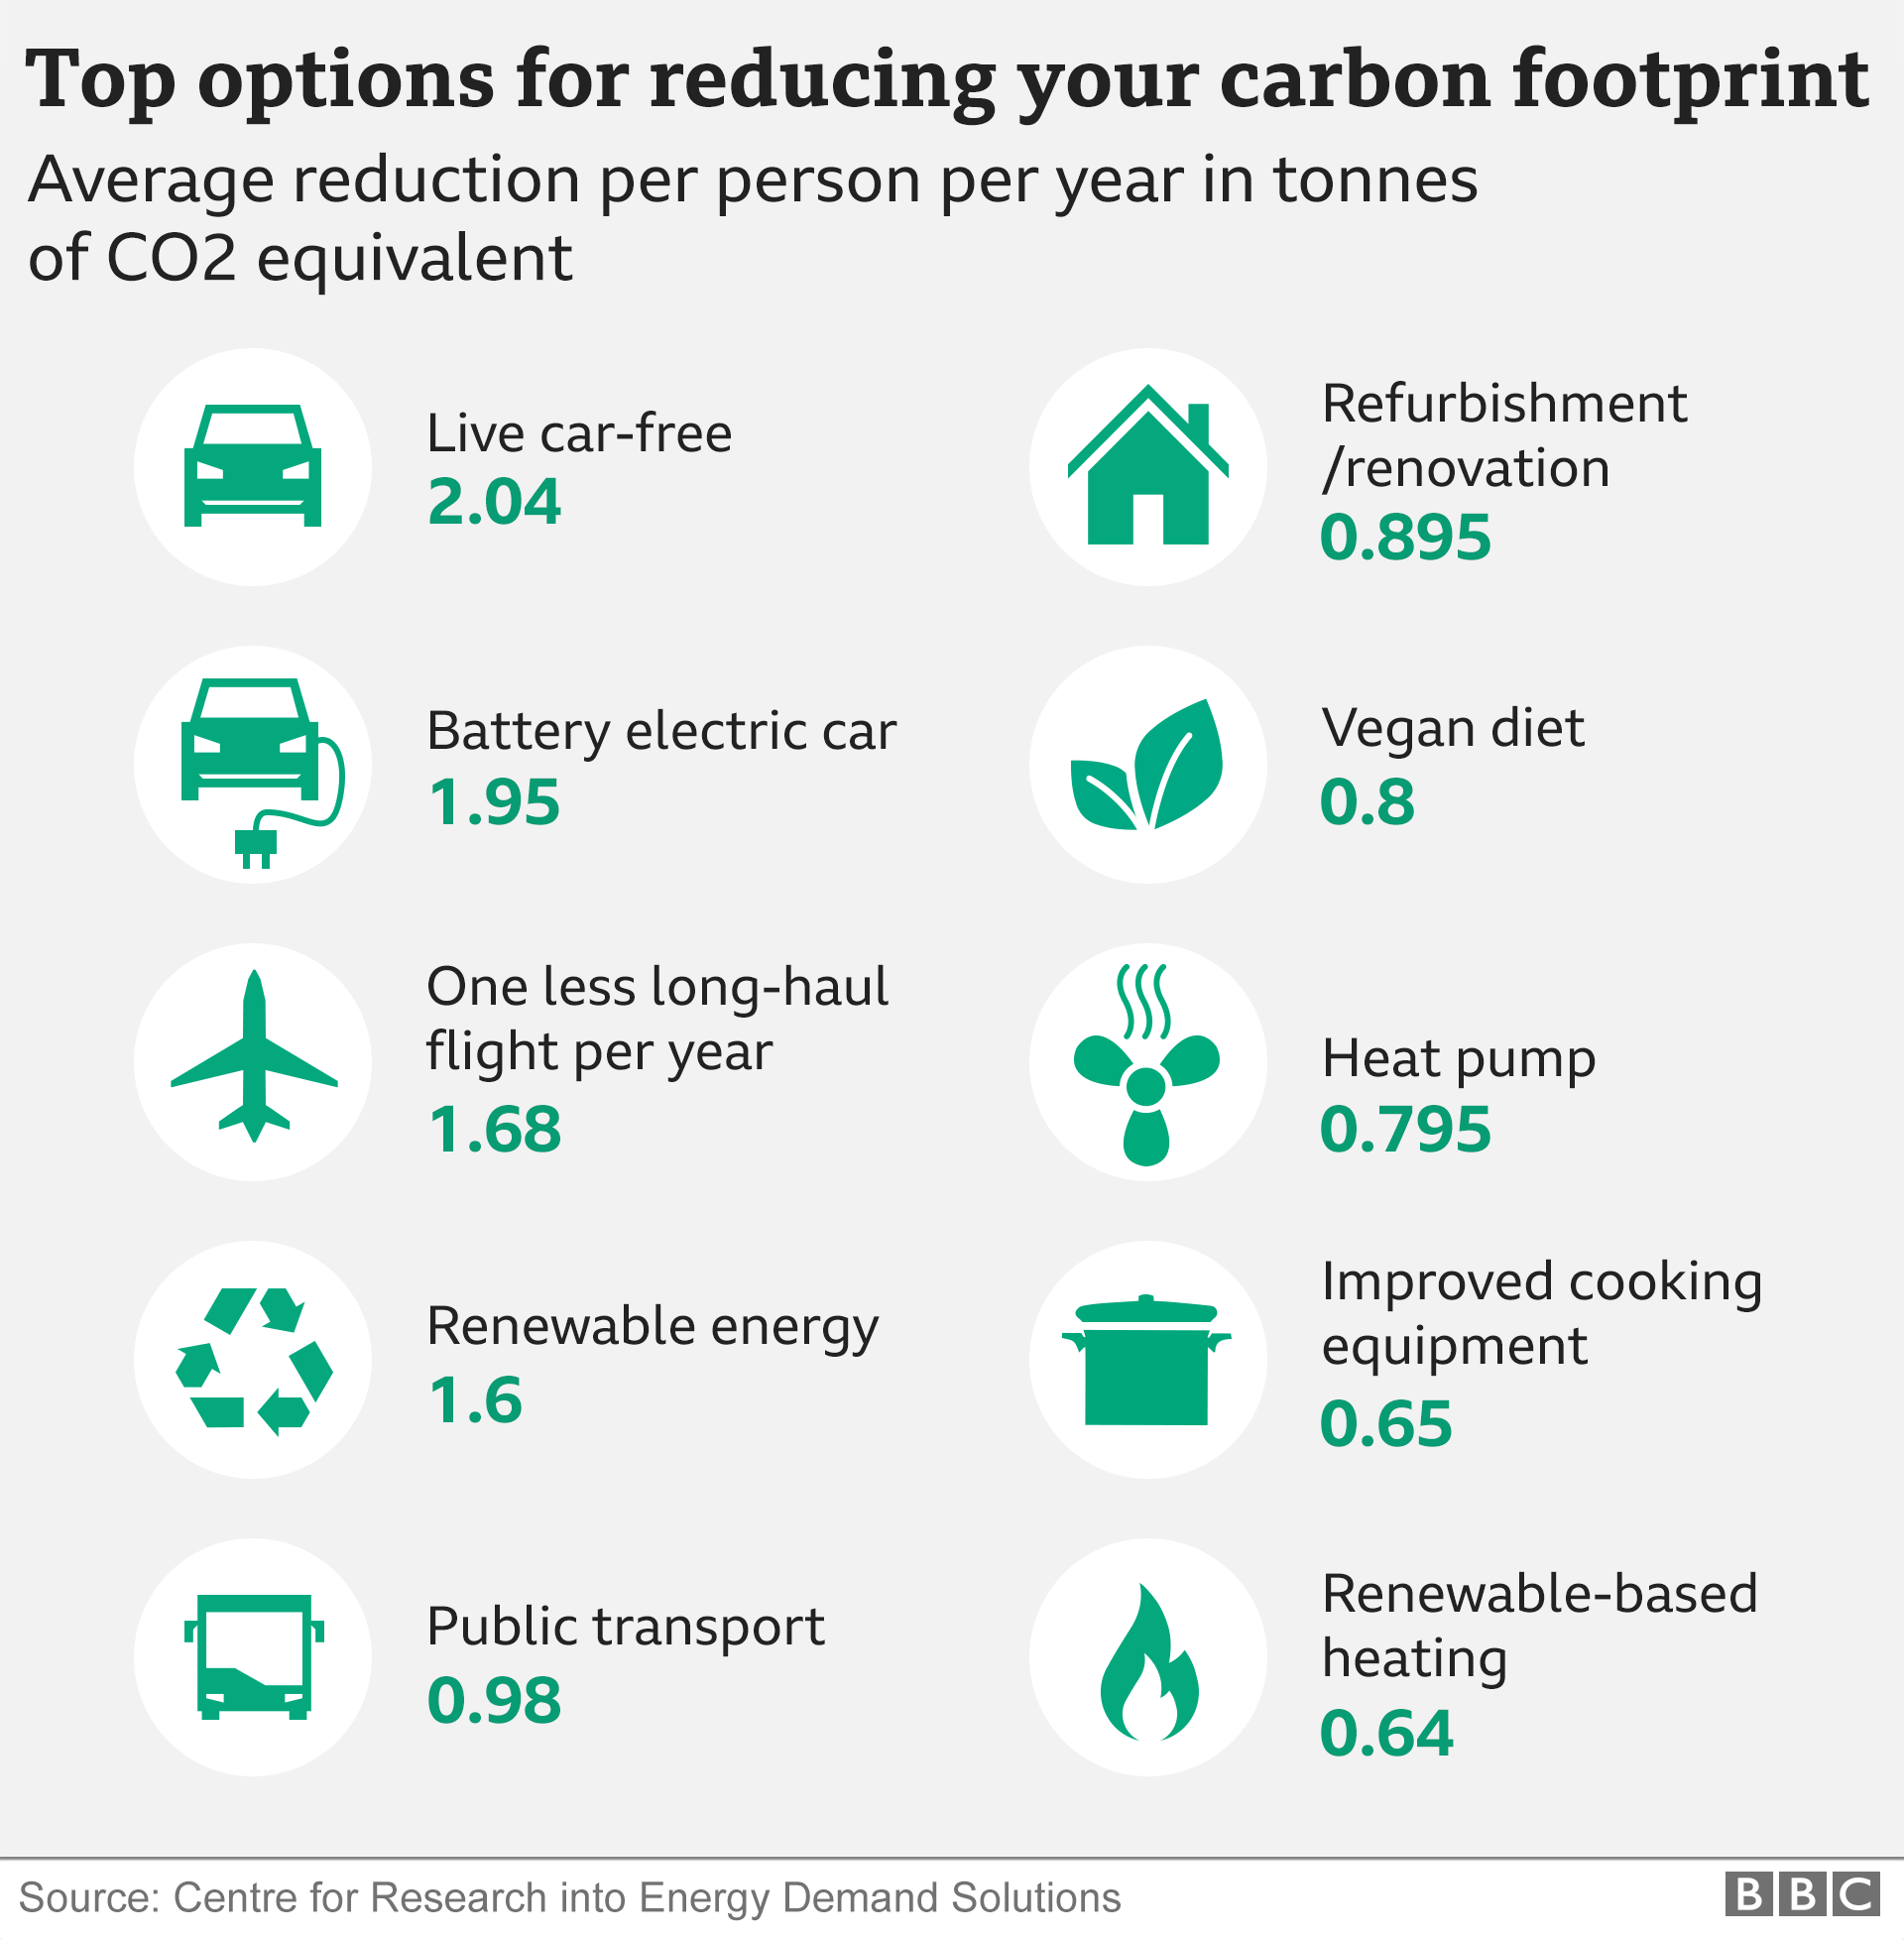 Graphic listing top 10 ways to reduce carbon footprint from getting rid of your car to installing a heat pump